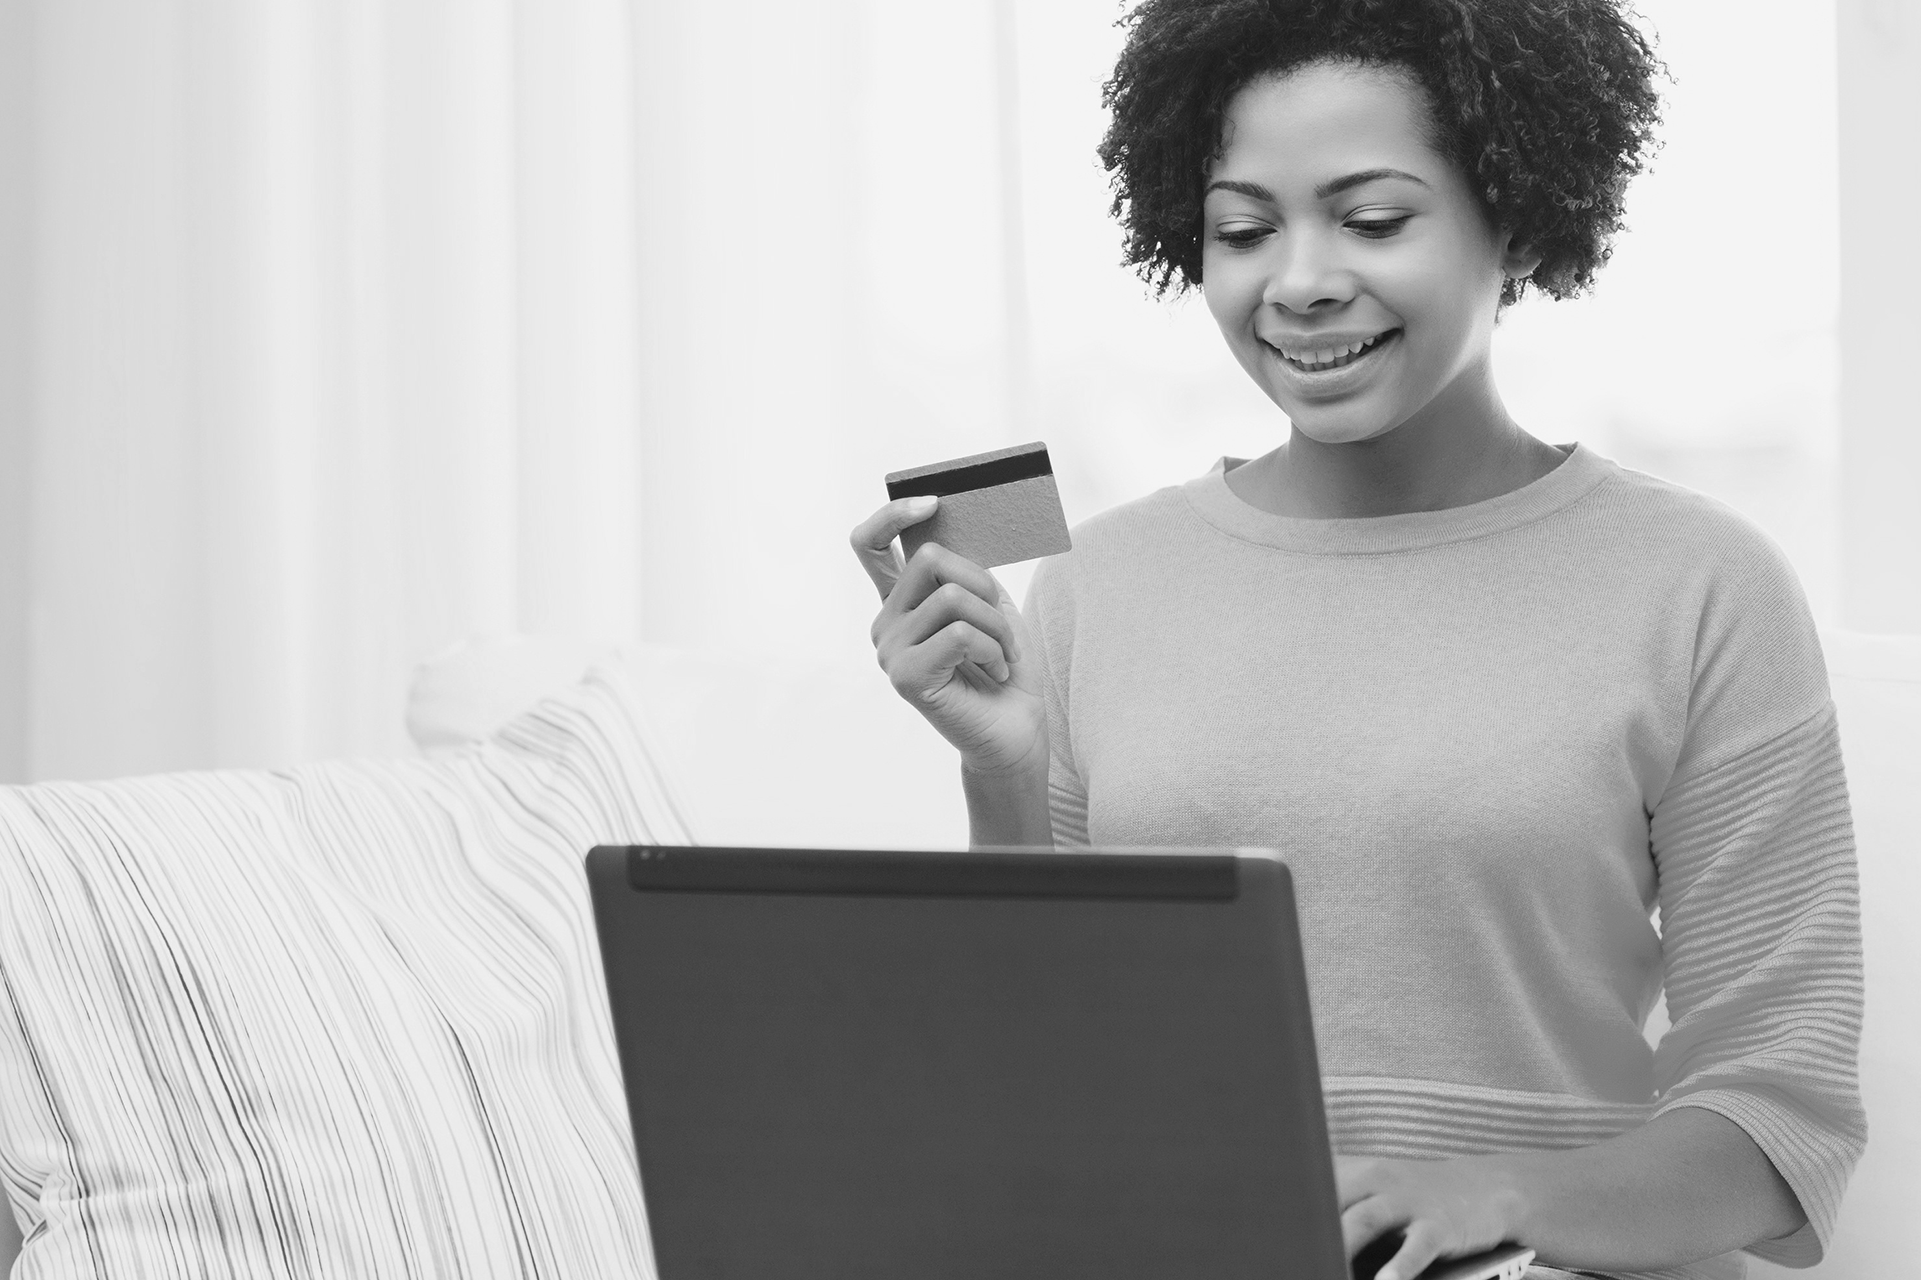 woman-shopping-at-online-store-for-utilities